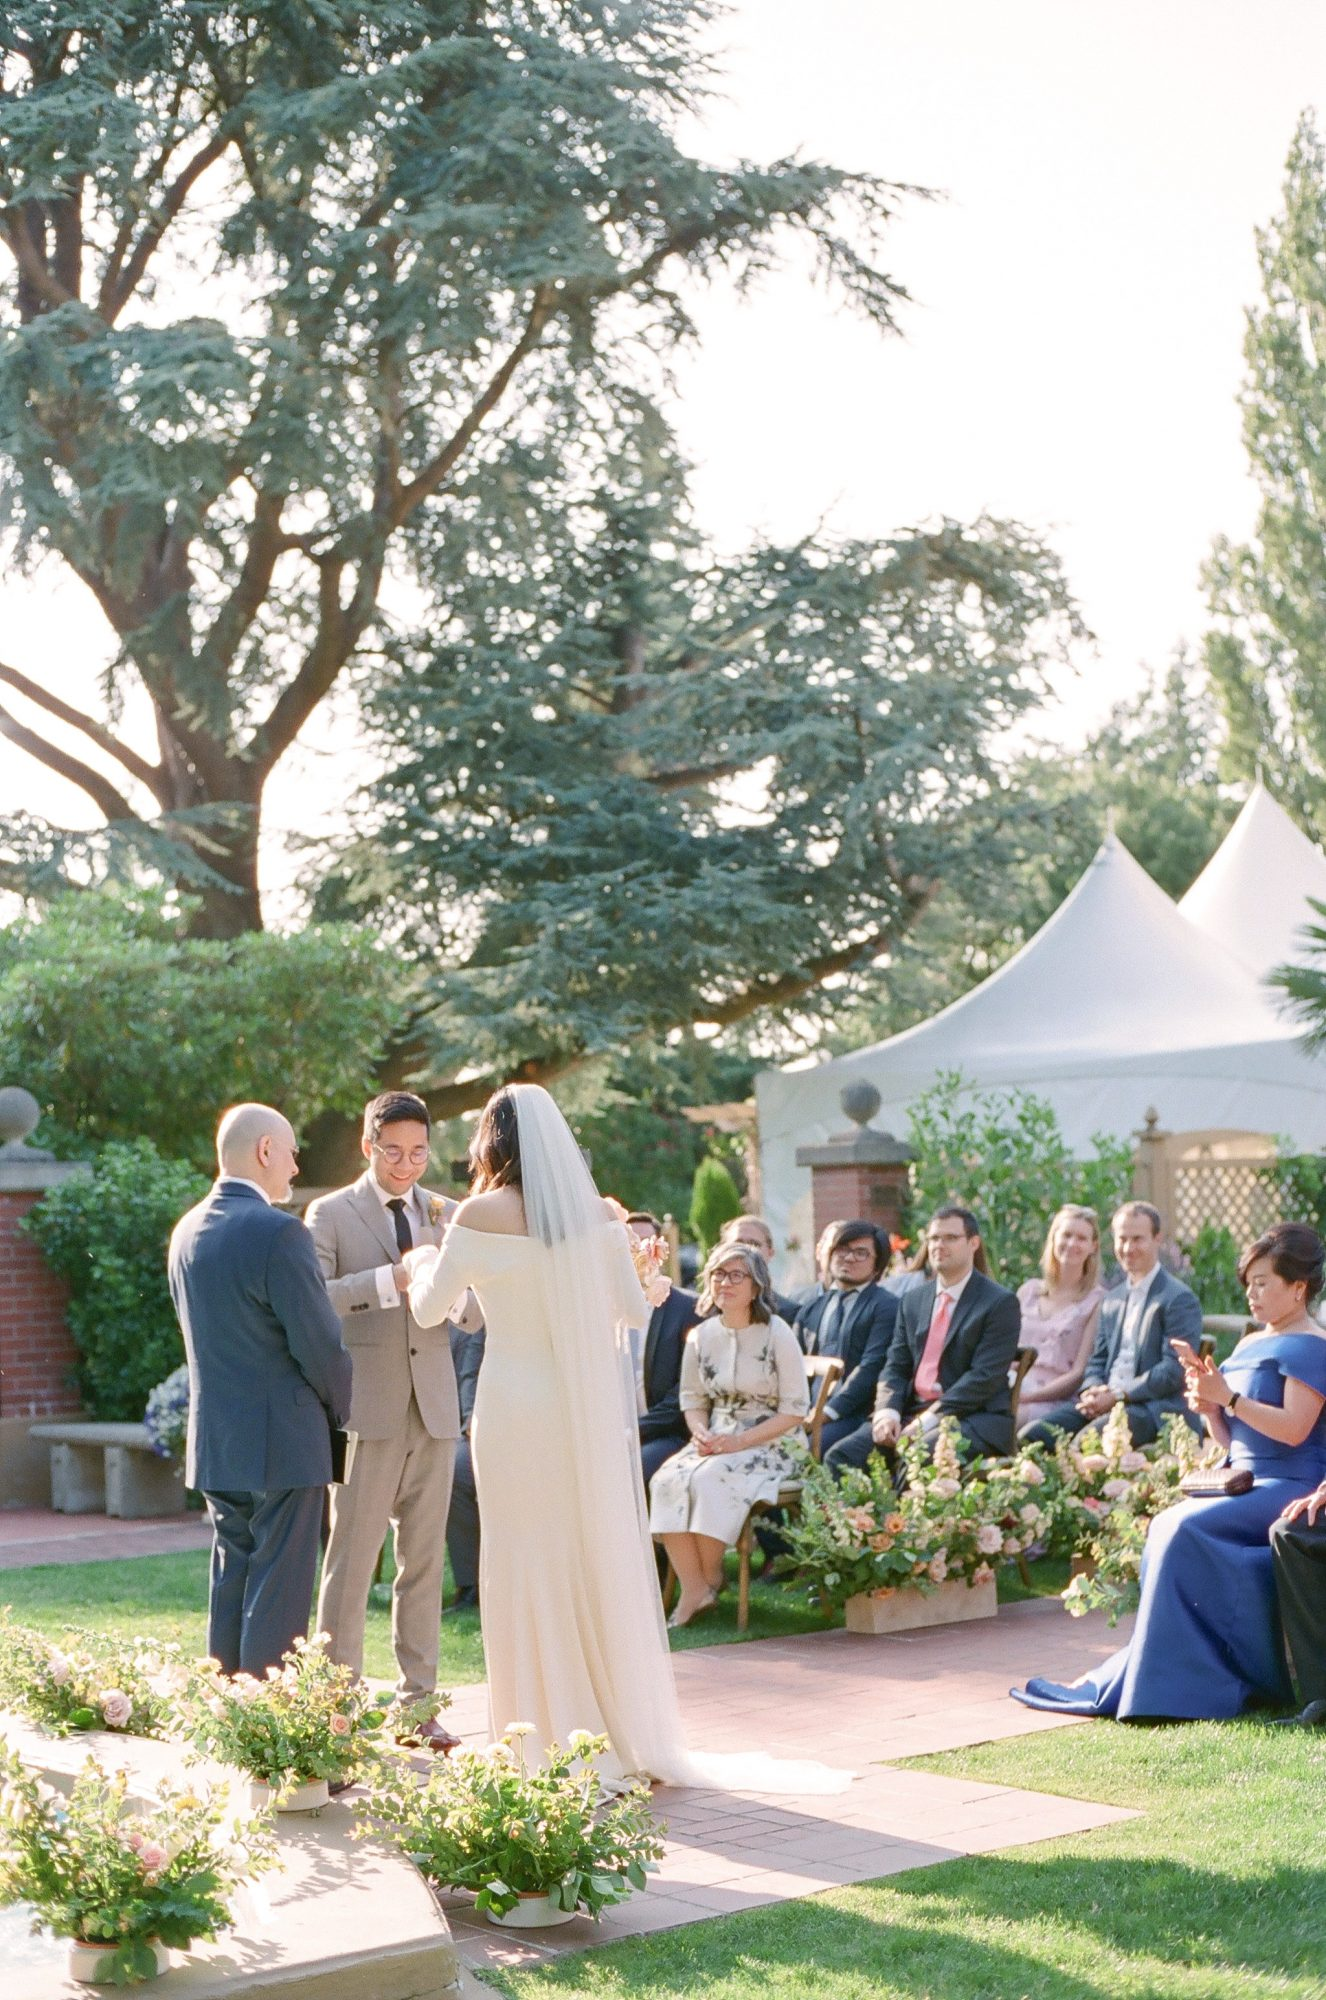 evelyn sam wedding intimate officiation during ceremony